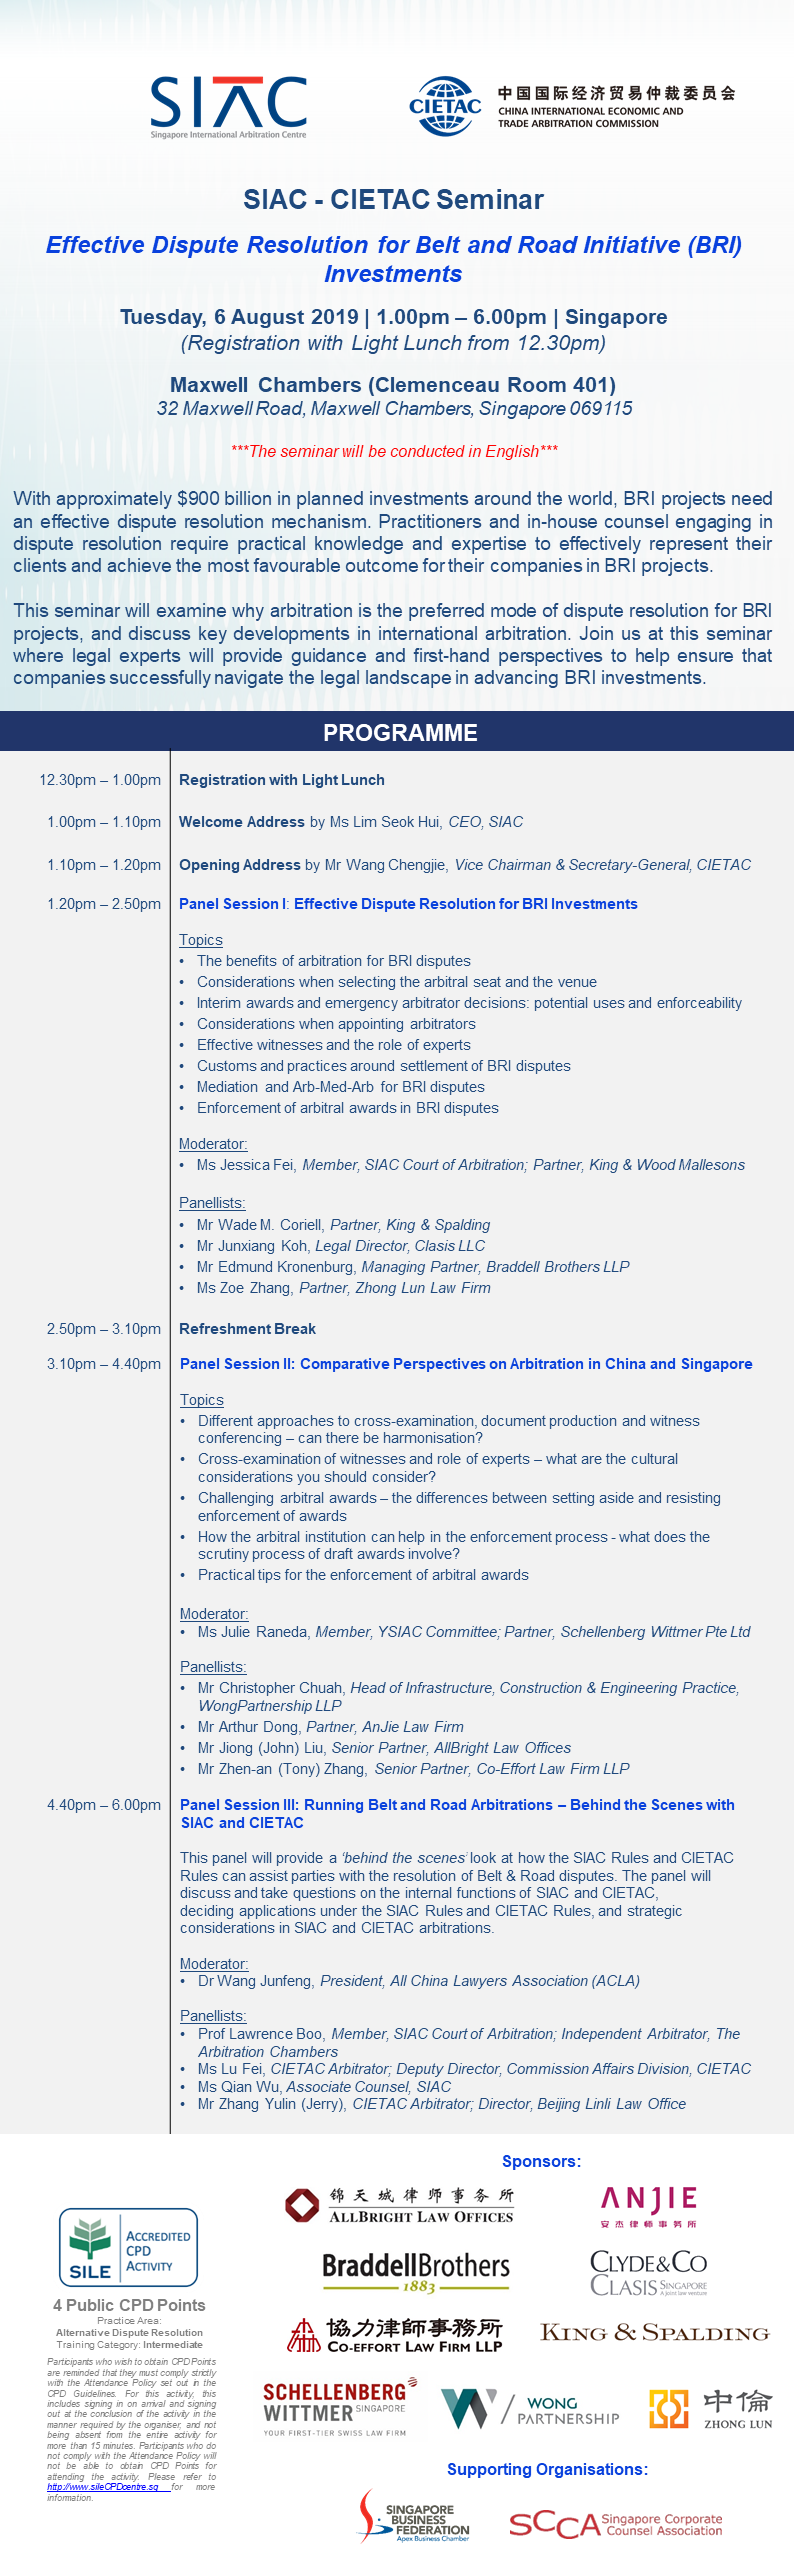 images/SIAC-CIETAC Seminar Flyer_Website.png